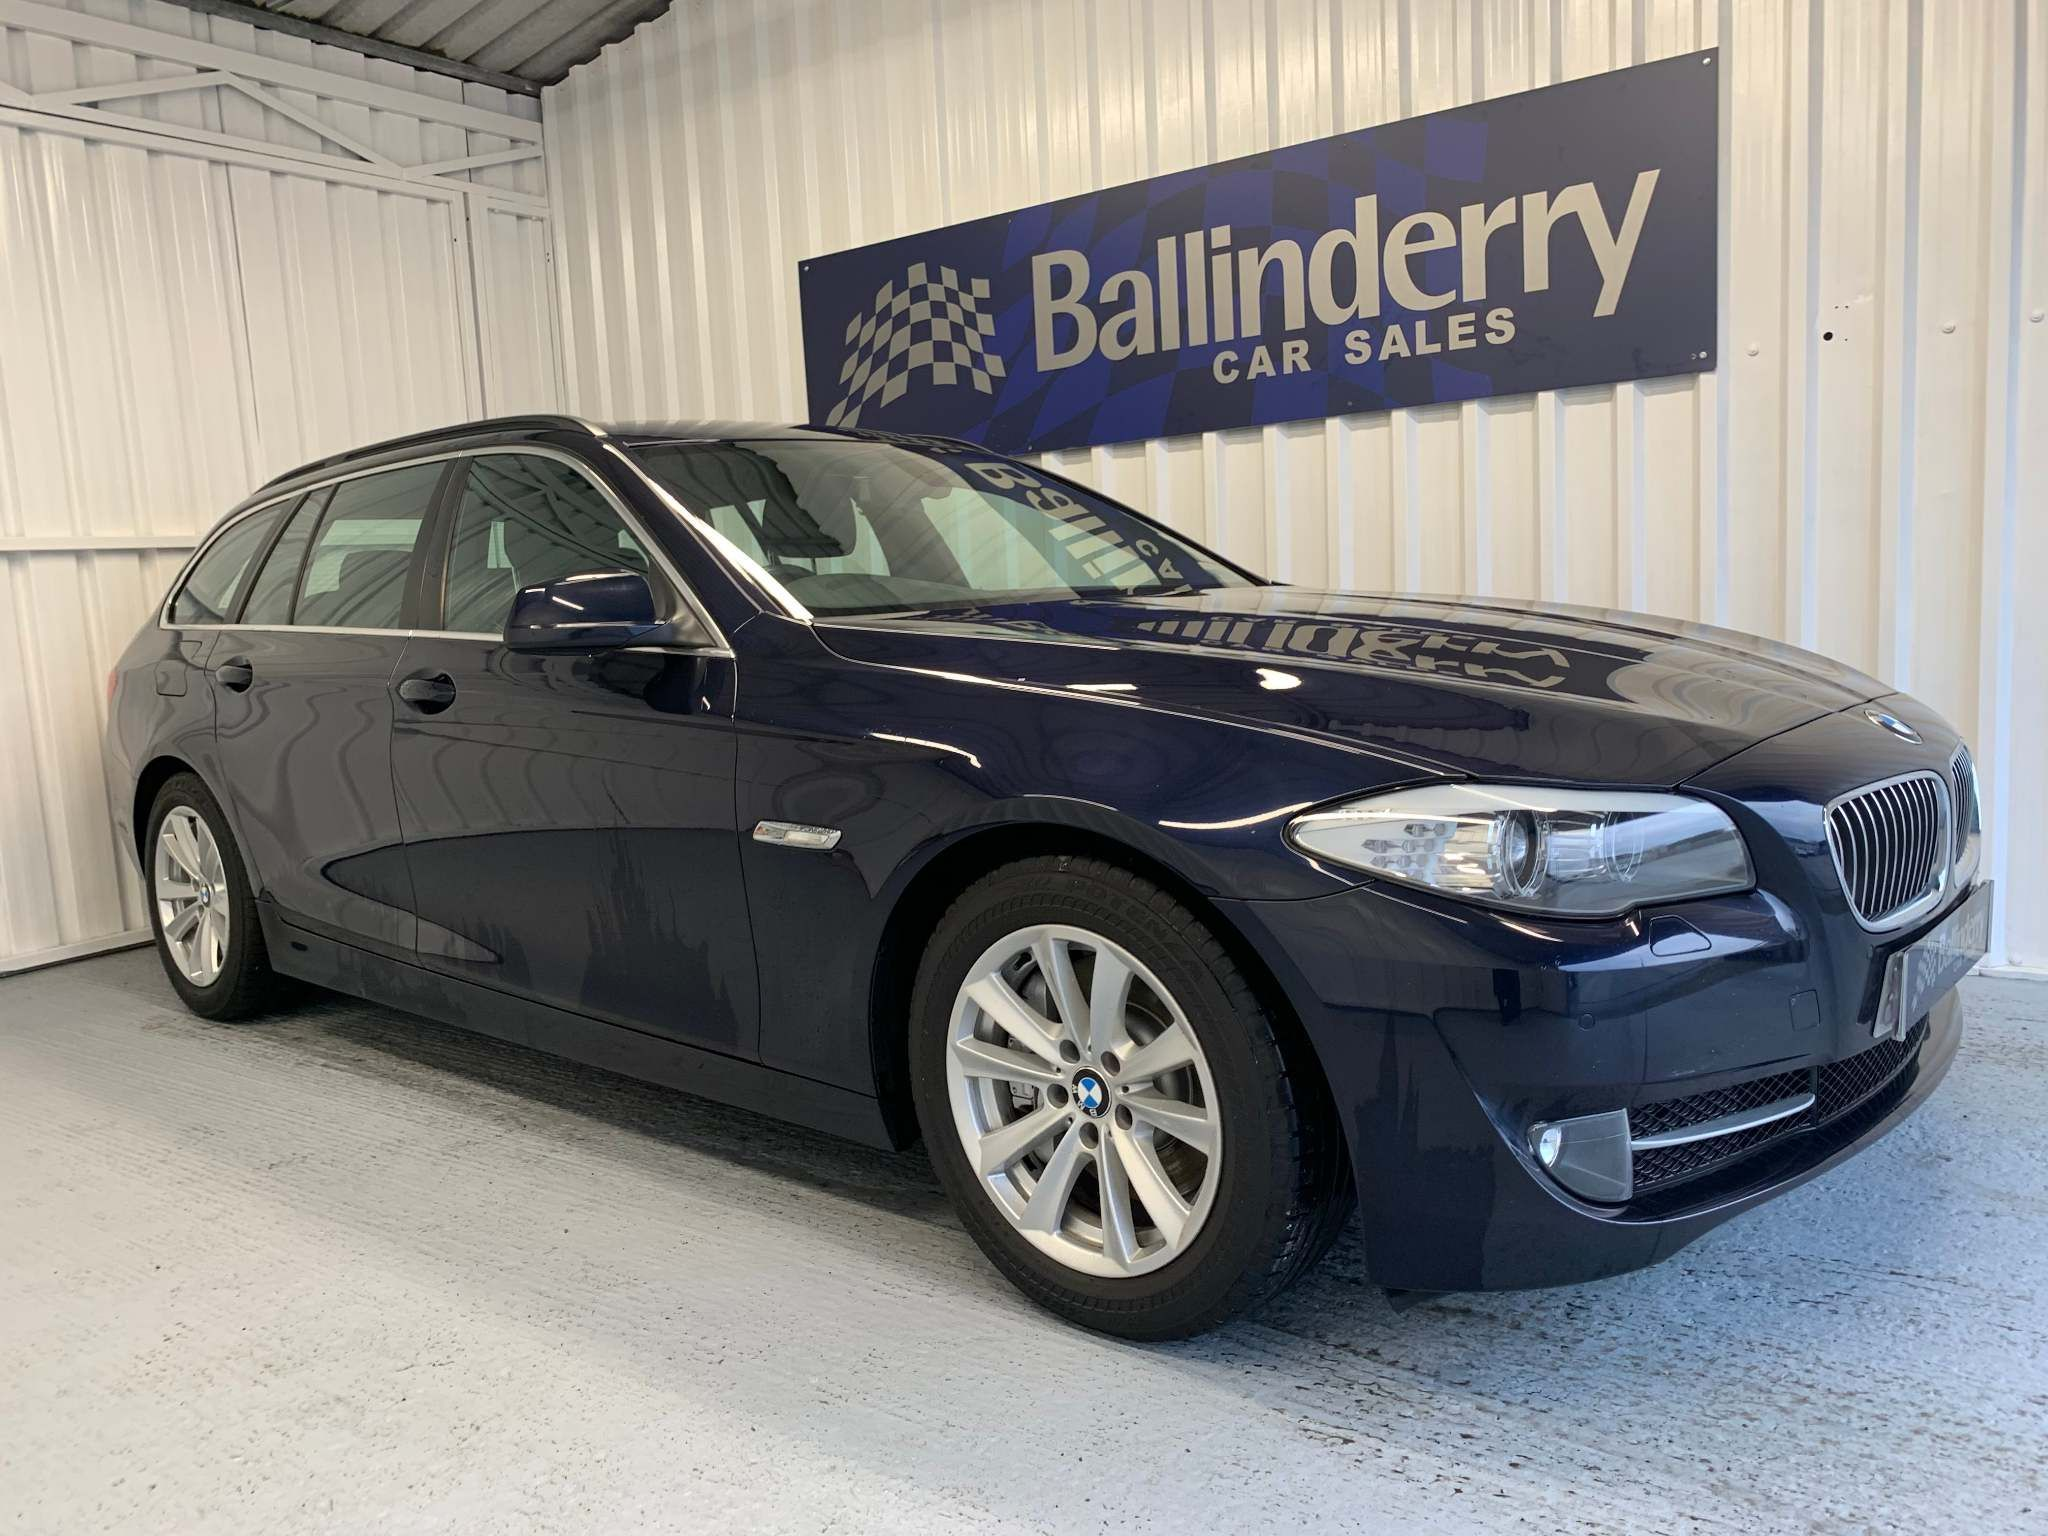 2013 BMW 5 Series 2.0 525d SE Touring Diesel Automatic SAT NAV-BLACK LEATHER-B/TOOTH – Ballinderry Car Sales Moira